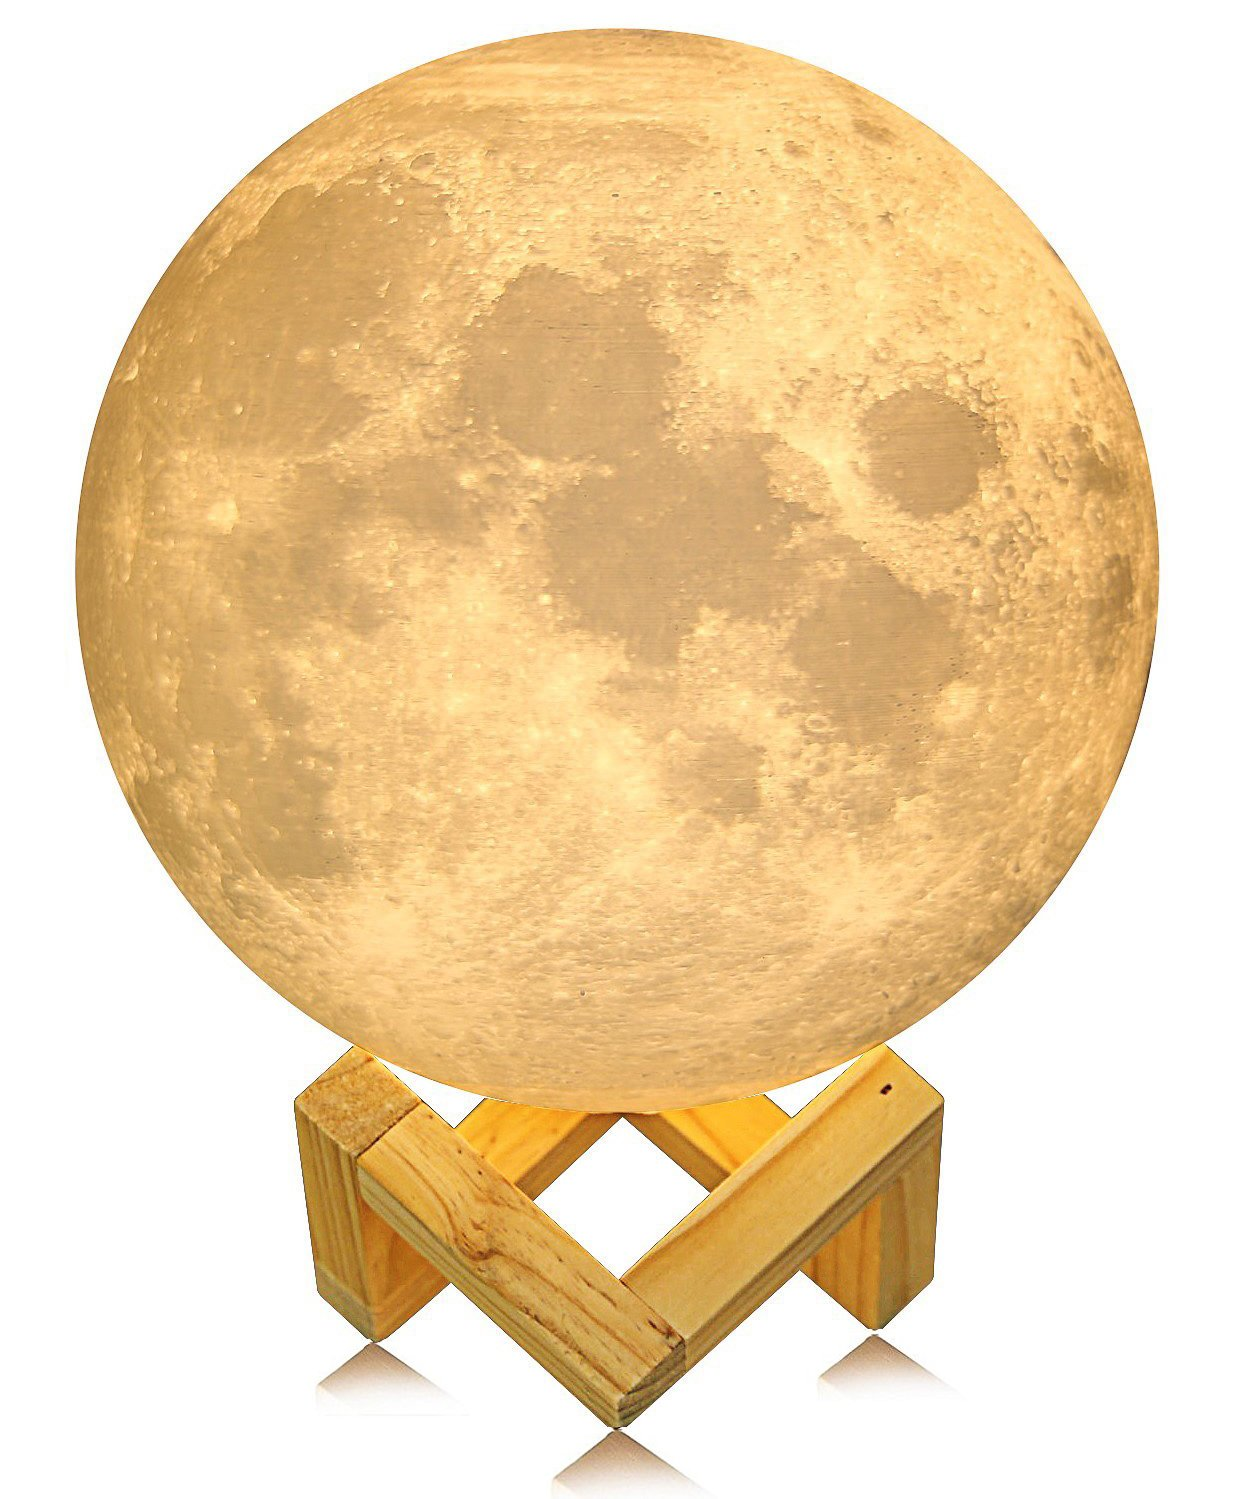 ACED Moon Light, 3D Printing LED Moon Lamp Large, Touch Control, Ajustable Brightness, USB Recharge, Seamless Lunar Moon Night Light Lamp with Stand for Bedrooms, Mother's Day Gift, 7.1Inch by ACED (Image #1)